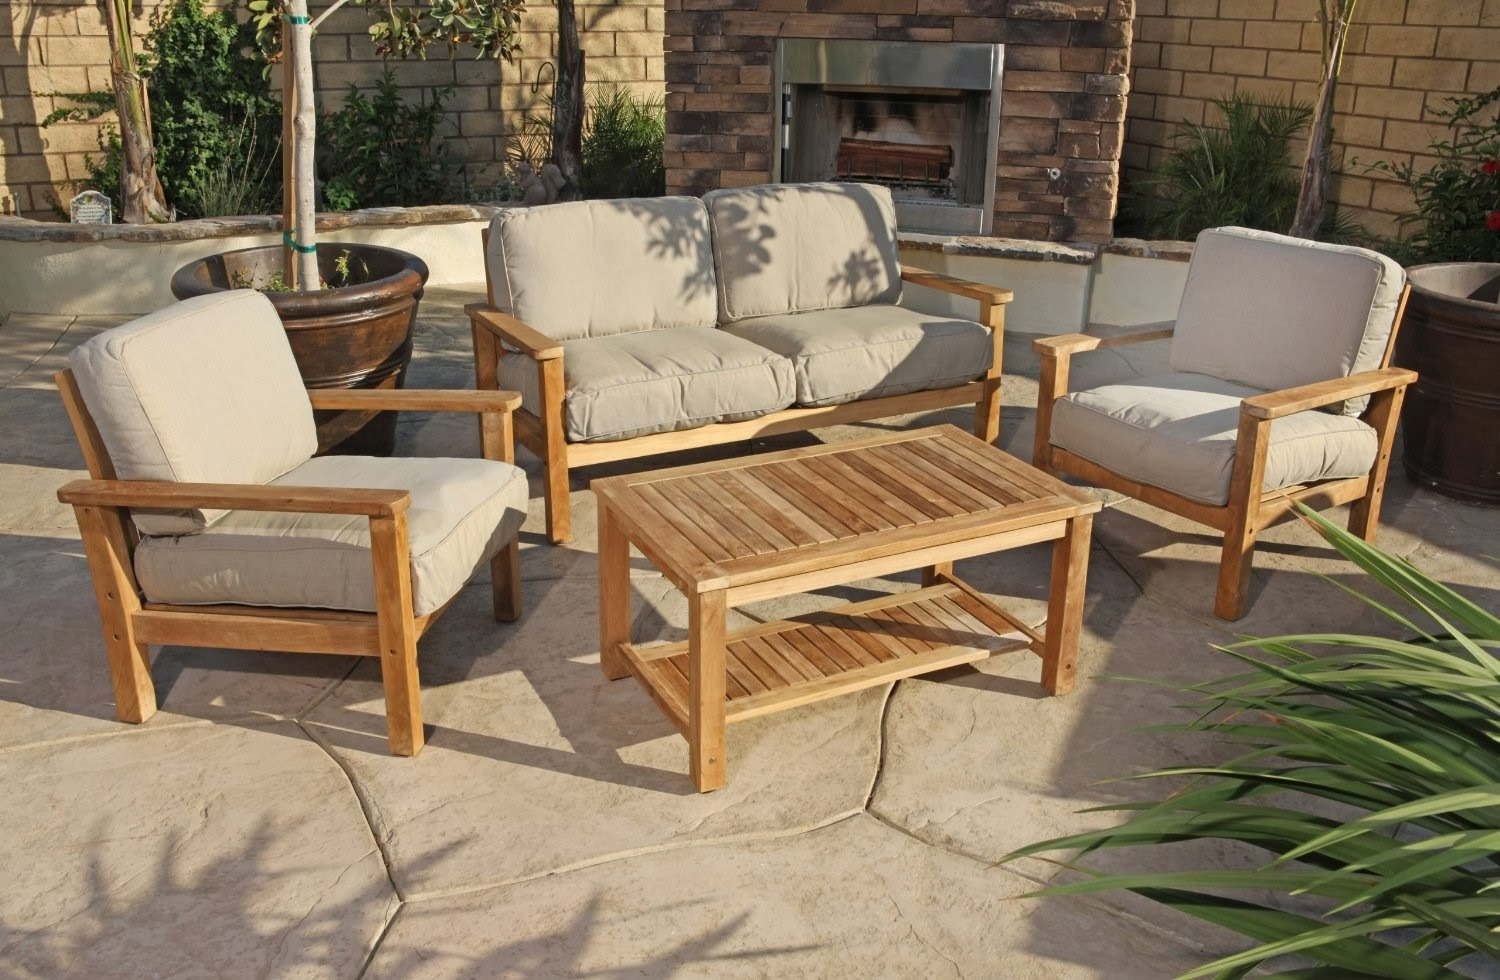 Furniture Chaise Lounge Teak Outdoor Furniture With Cream Cushion Regarding Outdoor Sofas And Chairs (Image 5 of 15)